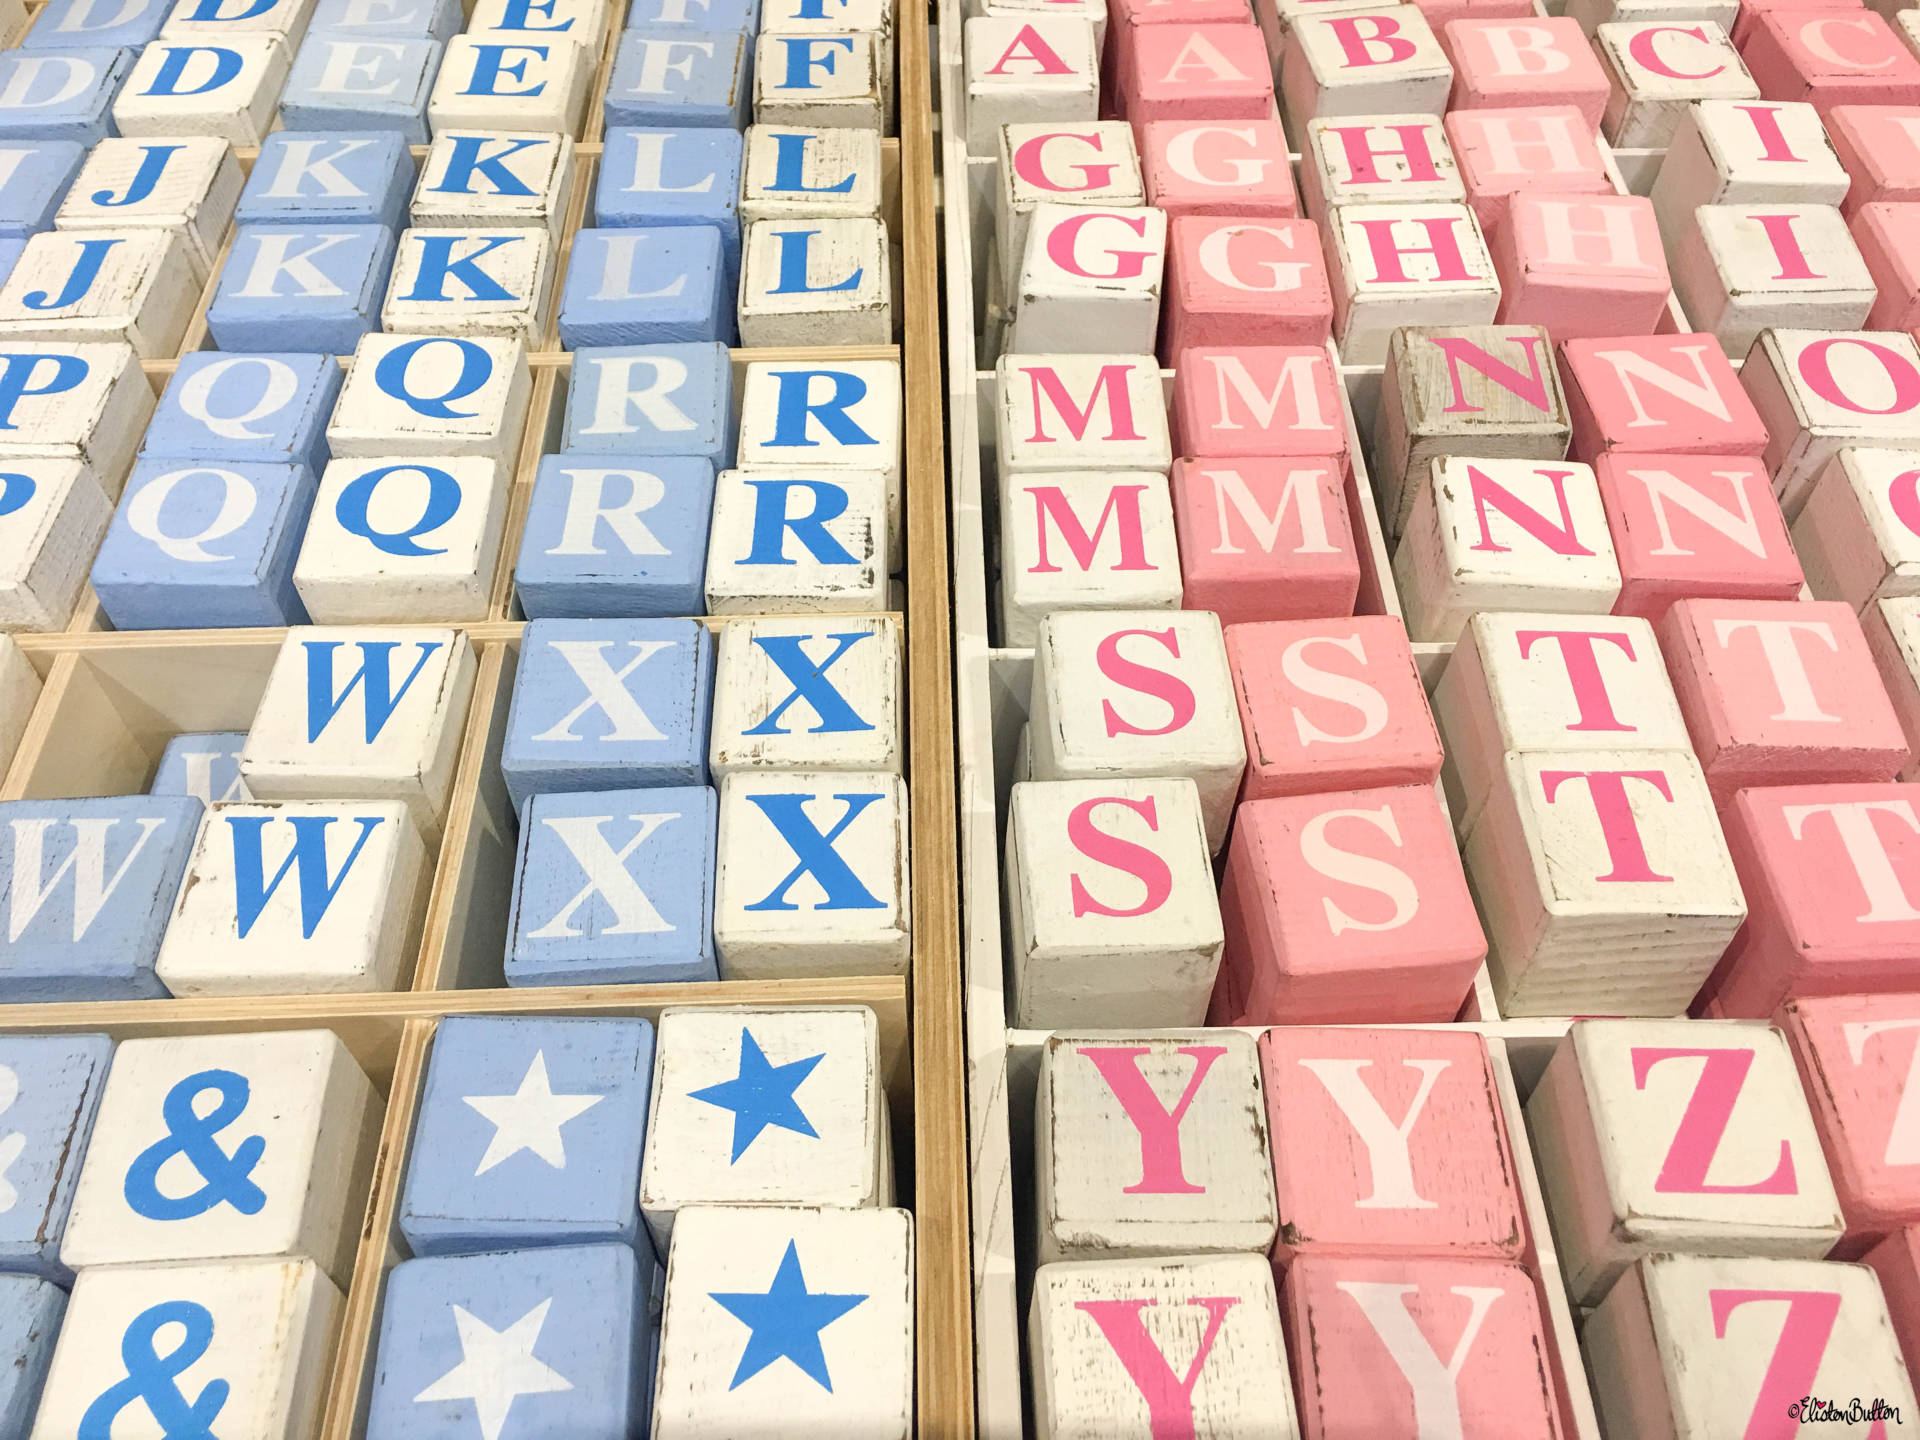 Blue, Pink and White Wooden Letter Blocks at Grand Designs Live 2017 with Eliston Button - Grand Designs Live 2017 – Part One at www.elistonbutton.com - Eliston Button - That Crafty Kid – Art, Design, Craft & Adventure.